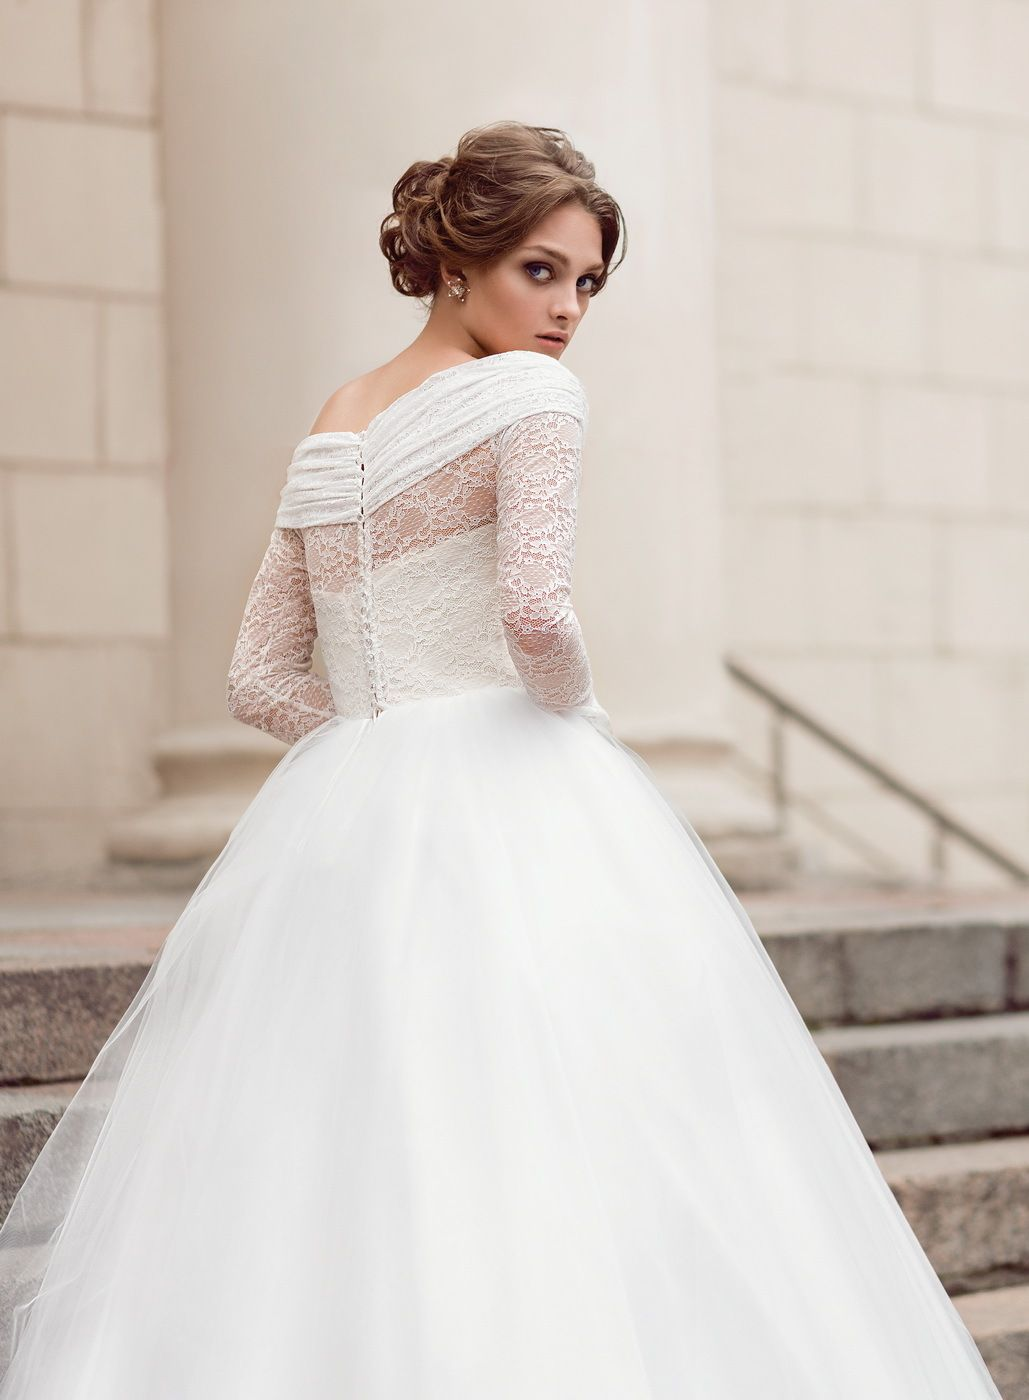 Melody of rain bride gowns bridal ball gown bridal